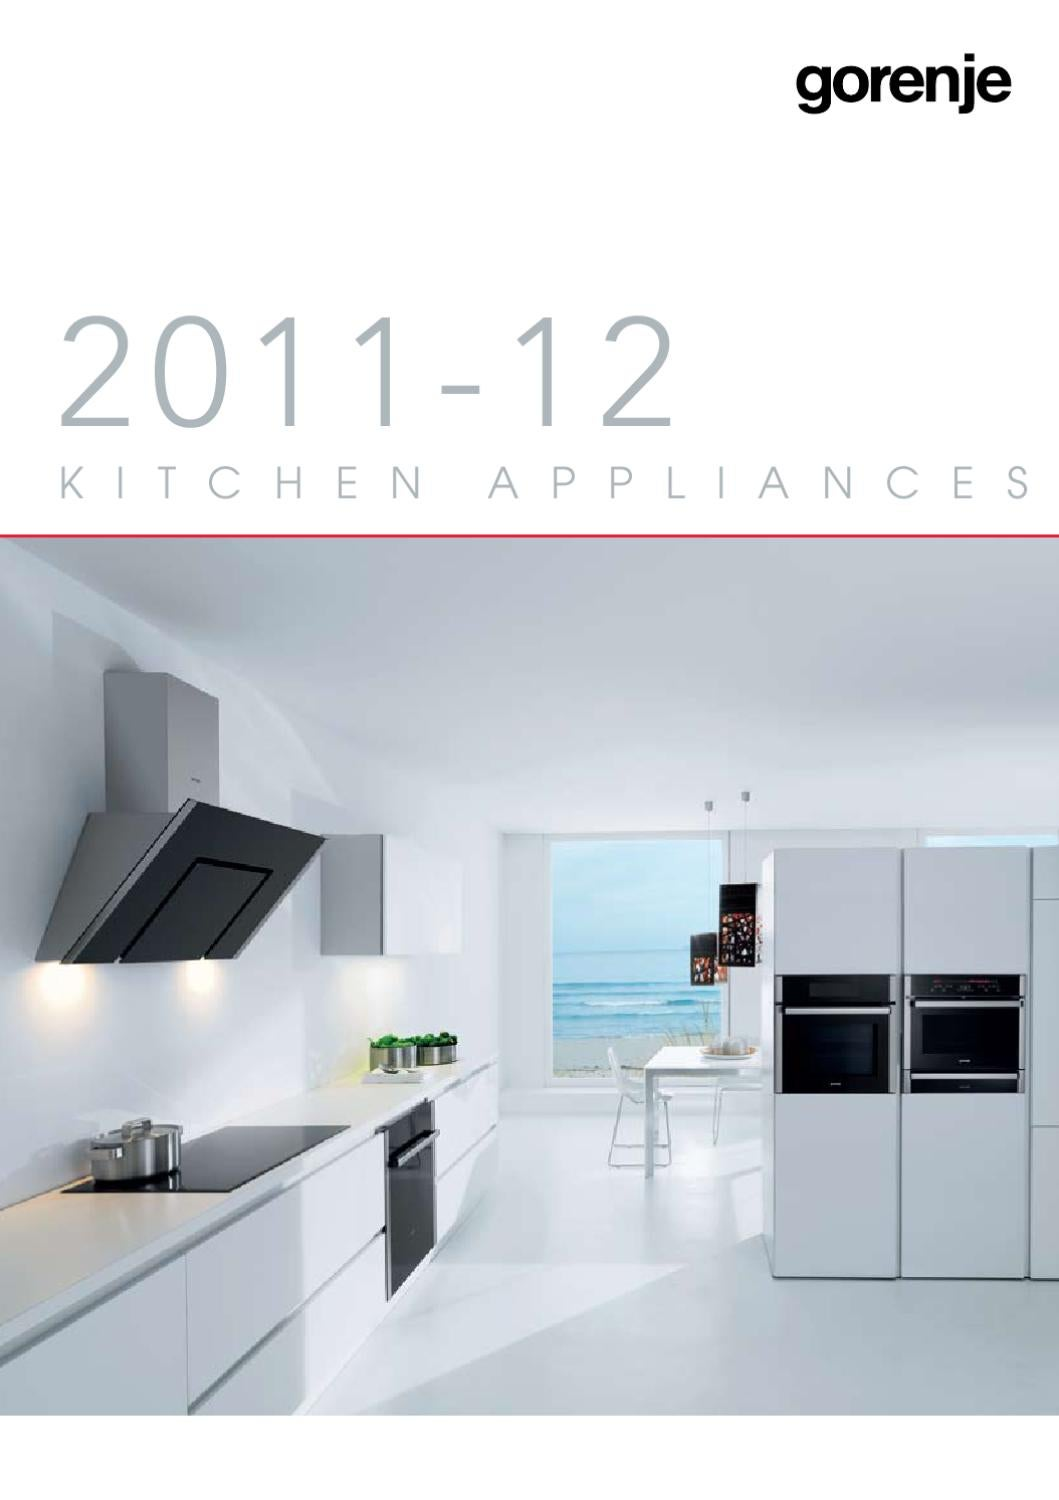 Gorenje Product Catalogue 2011-12 (Asia Edition) by Gorenje d.d. - issuu